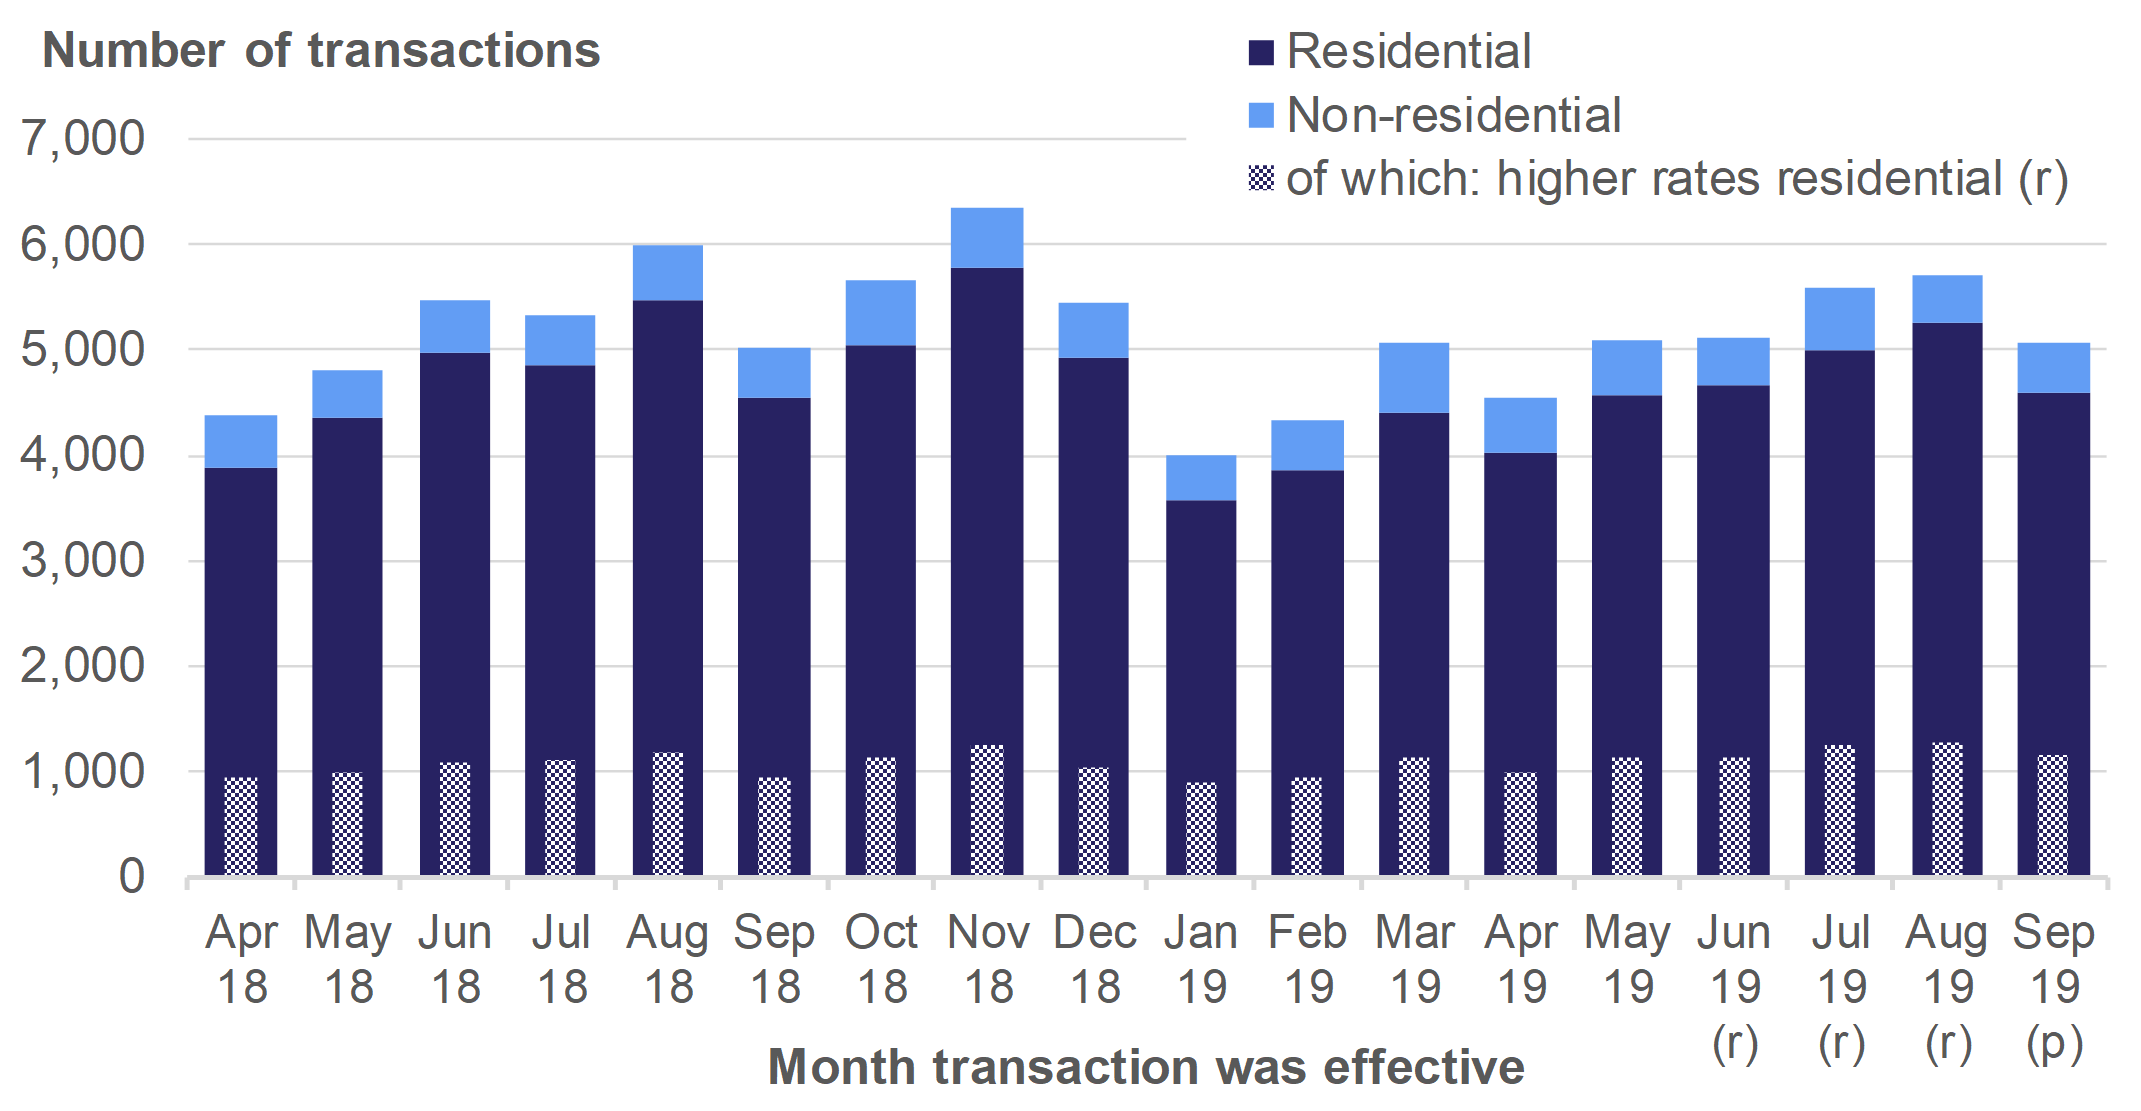 Figure 2.4 shows the monthly numbers of reported notifiable transactions from April 2018 to September 2019, for residential and non-residential transactions.